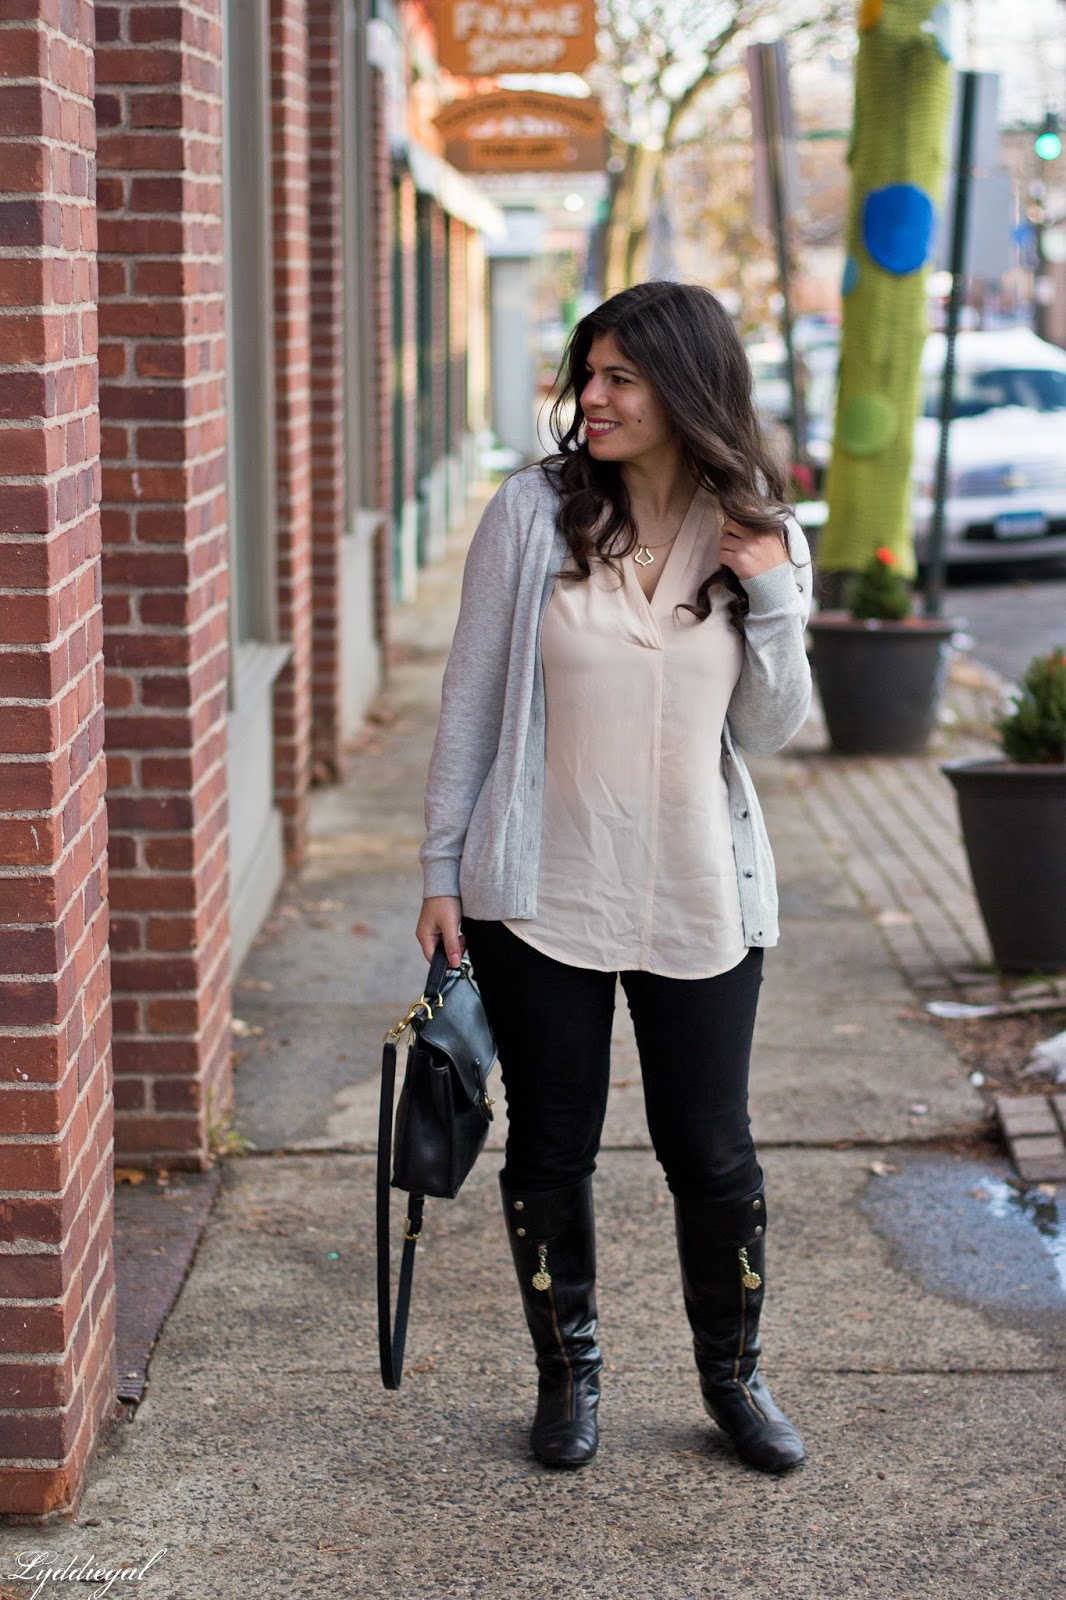 CT Fashion Blogger wearing a grey cardigan and silk blouse for winter